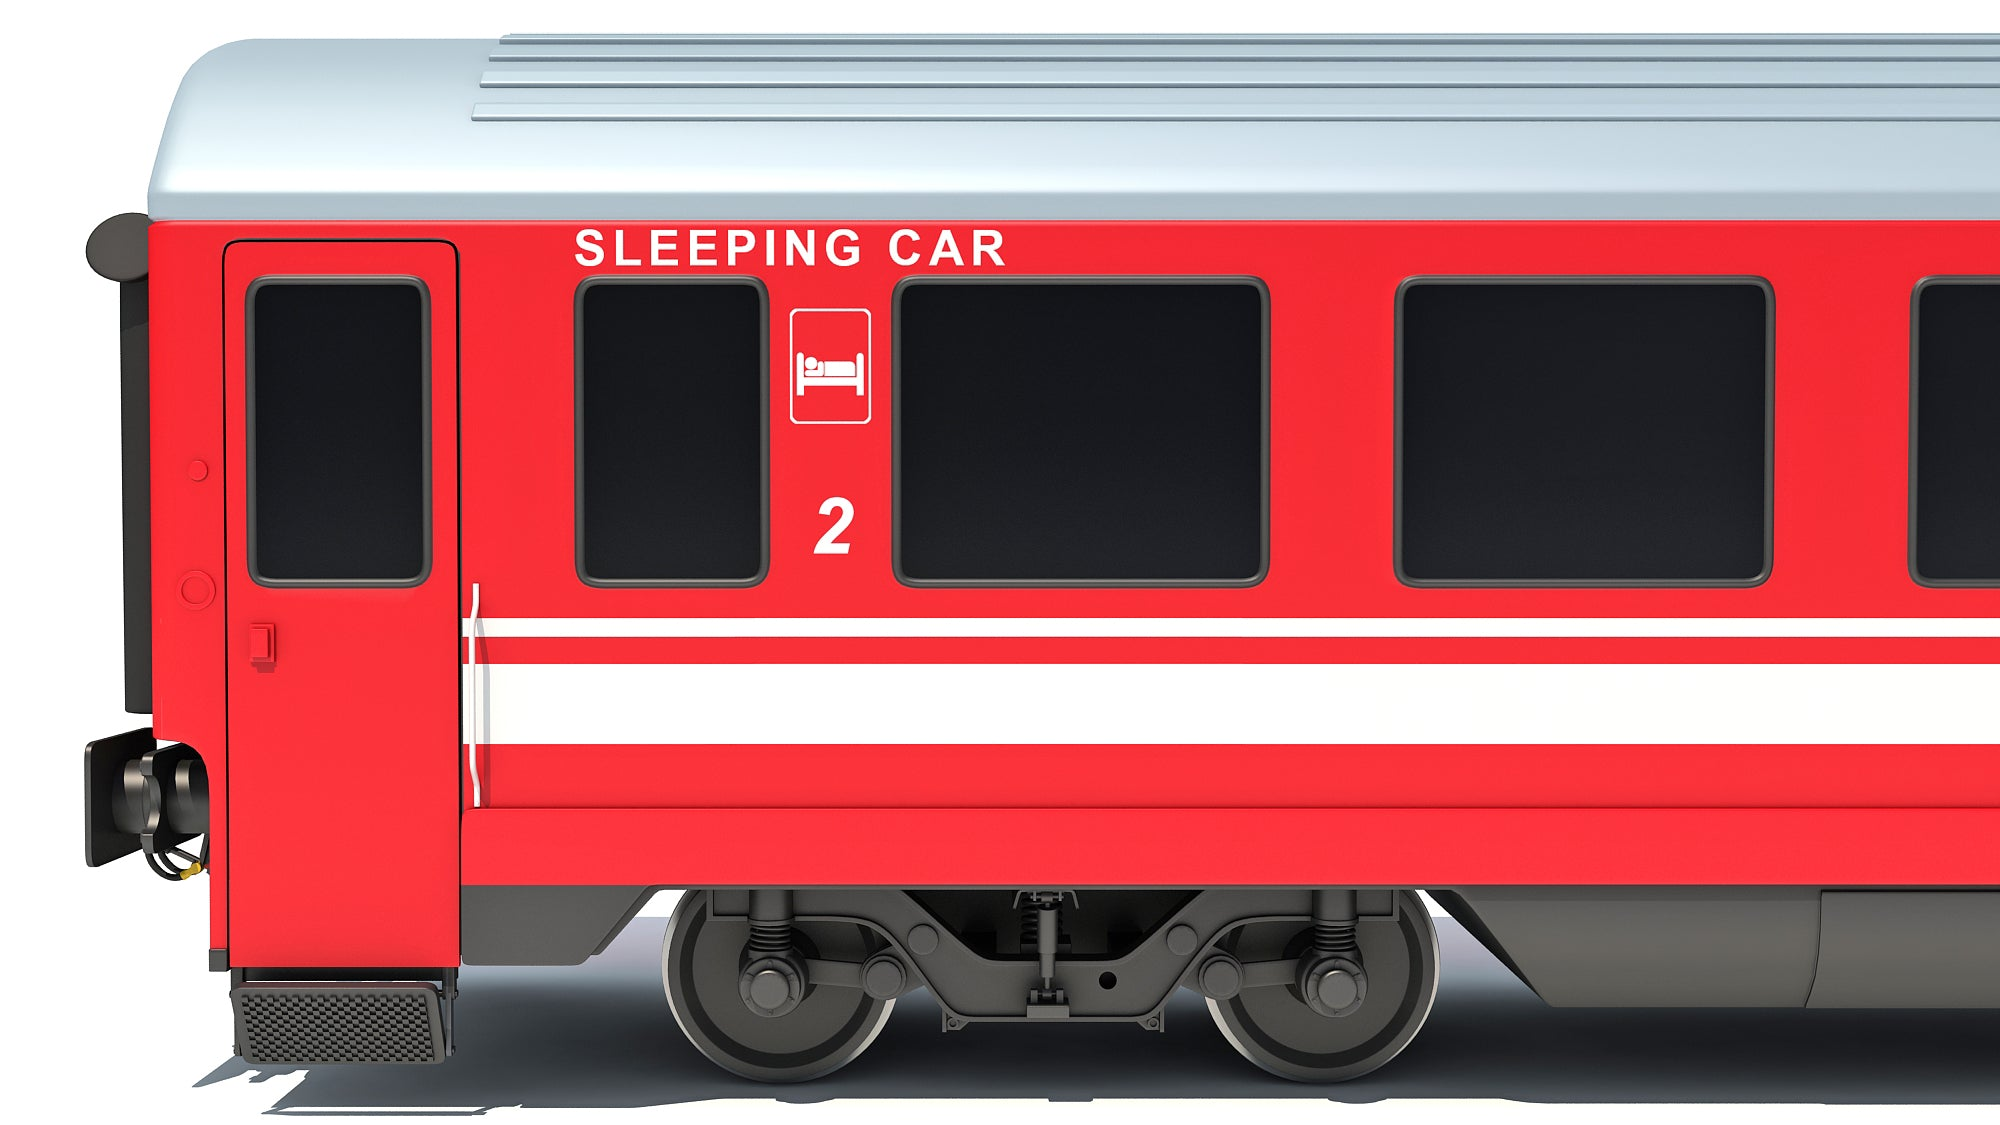 Sleeping Car